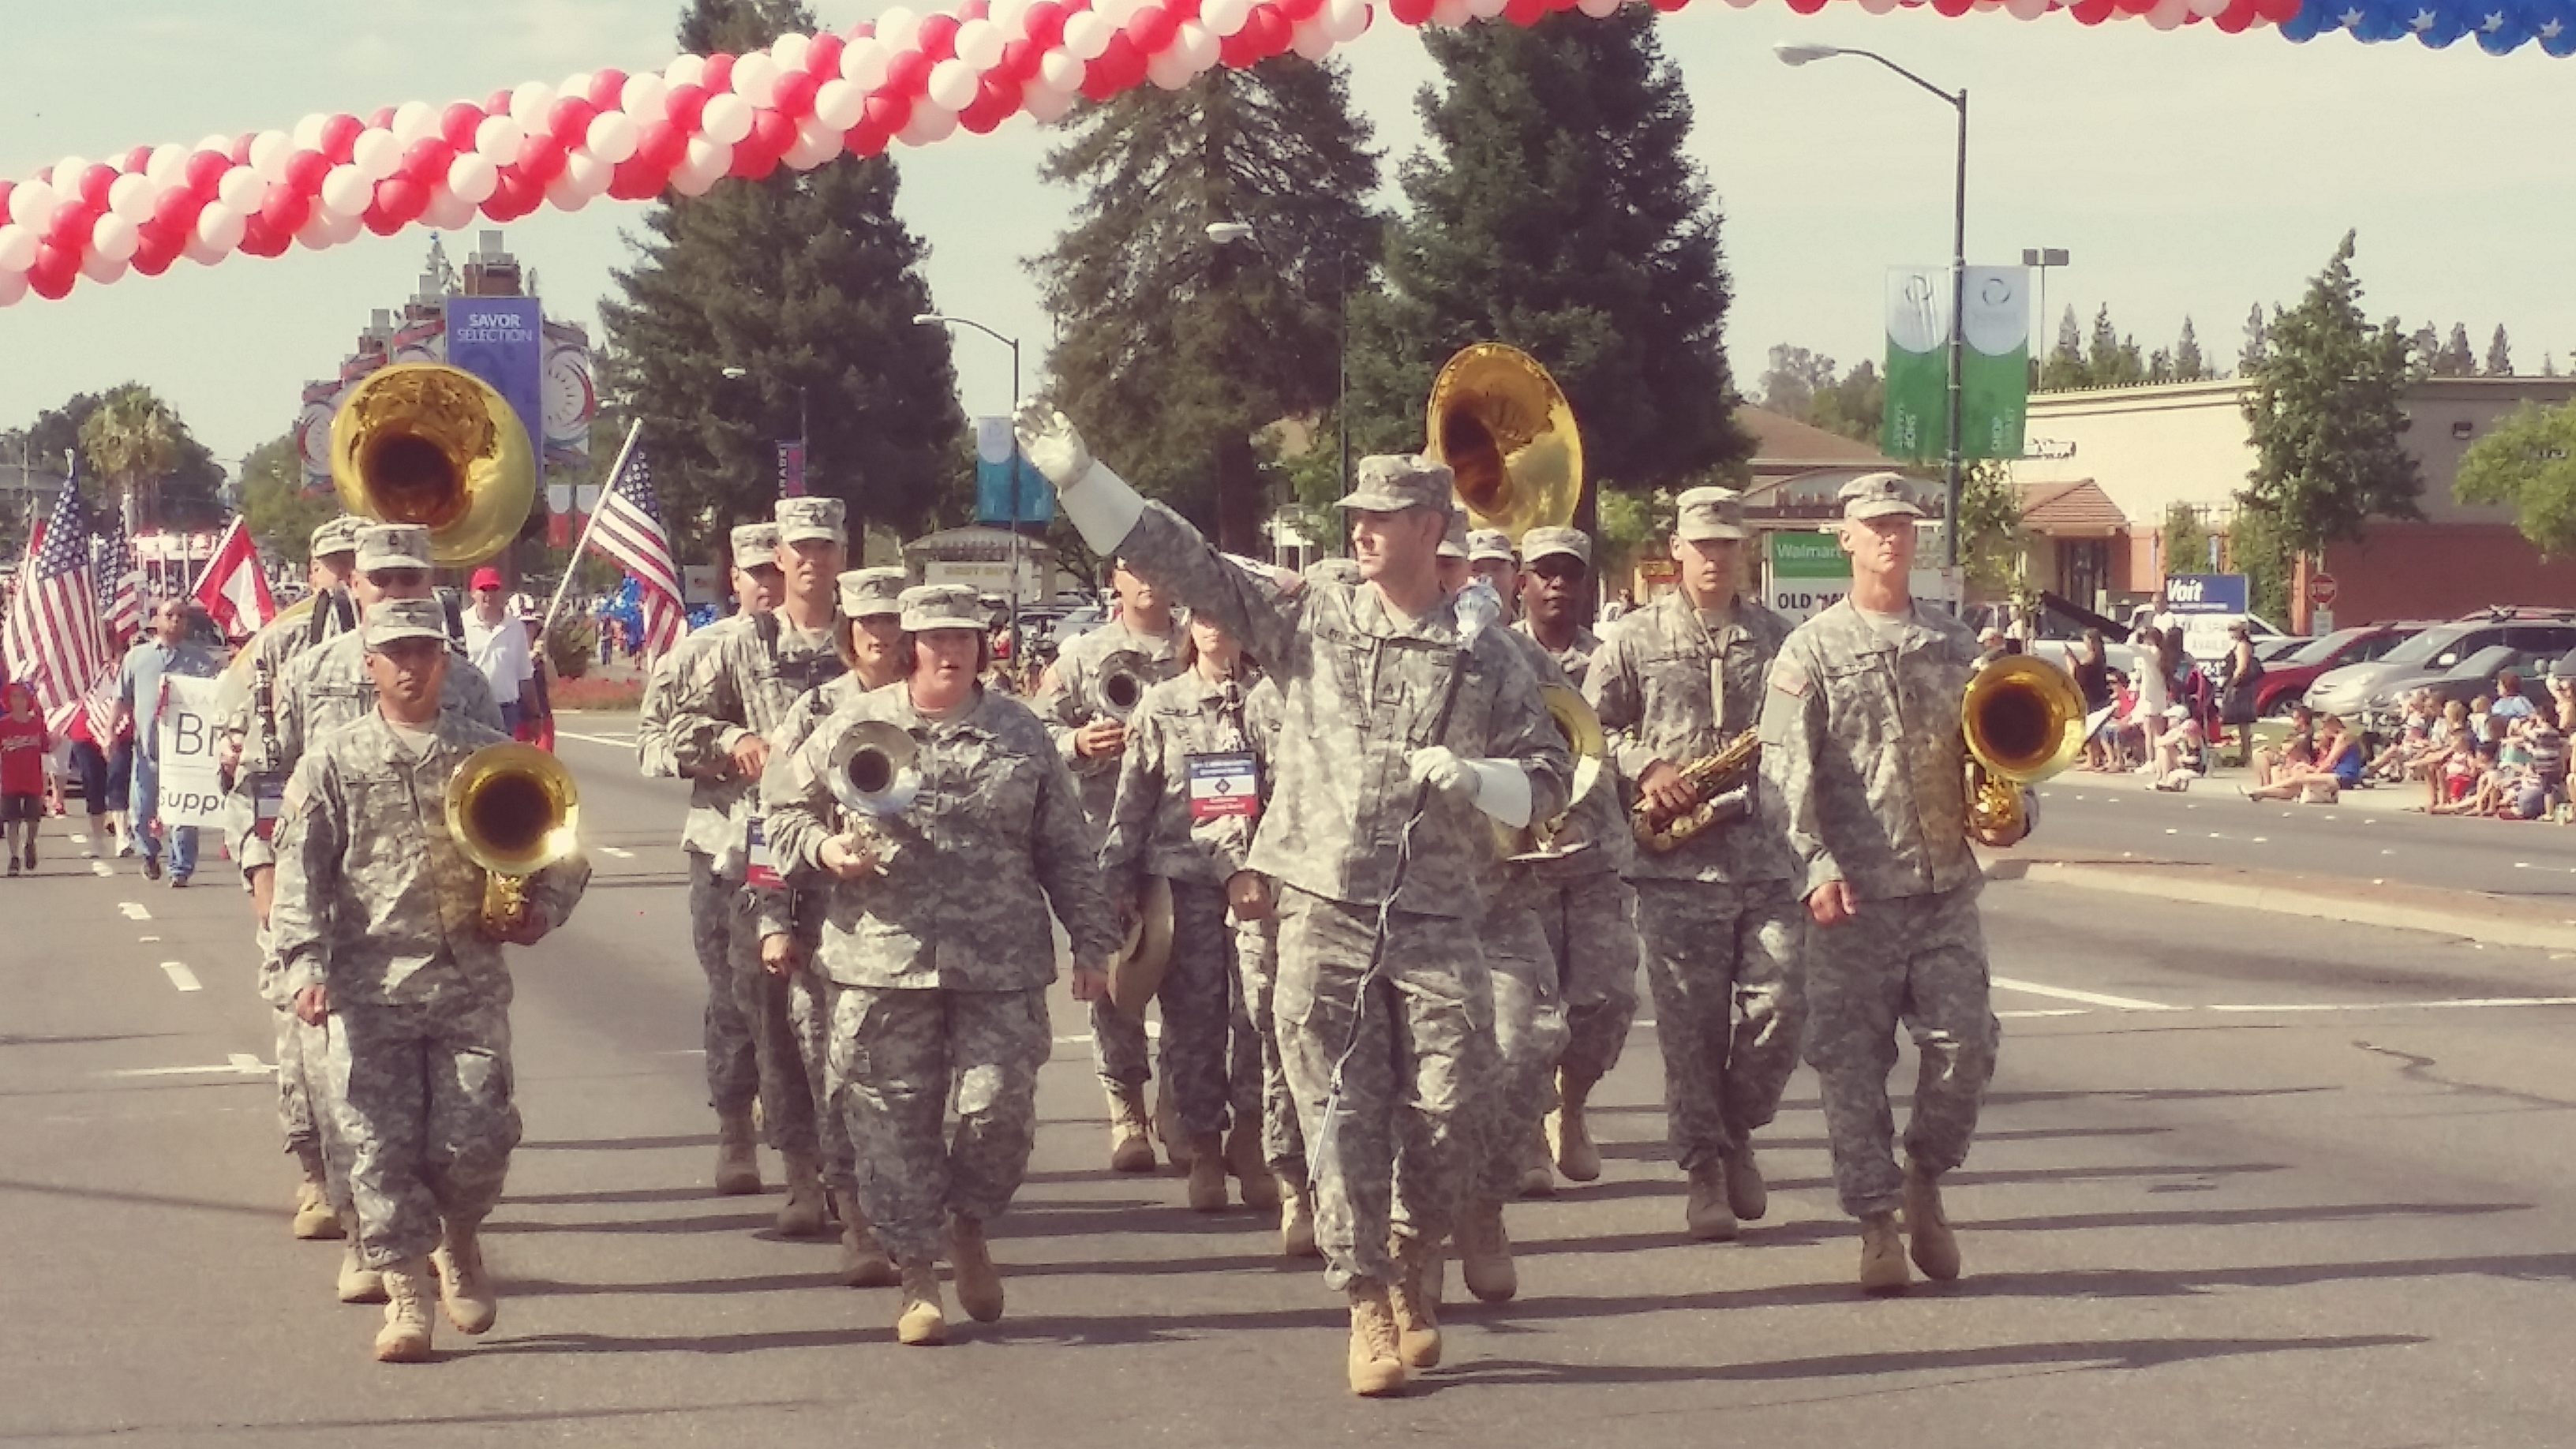 The military marching band